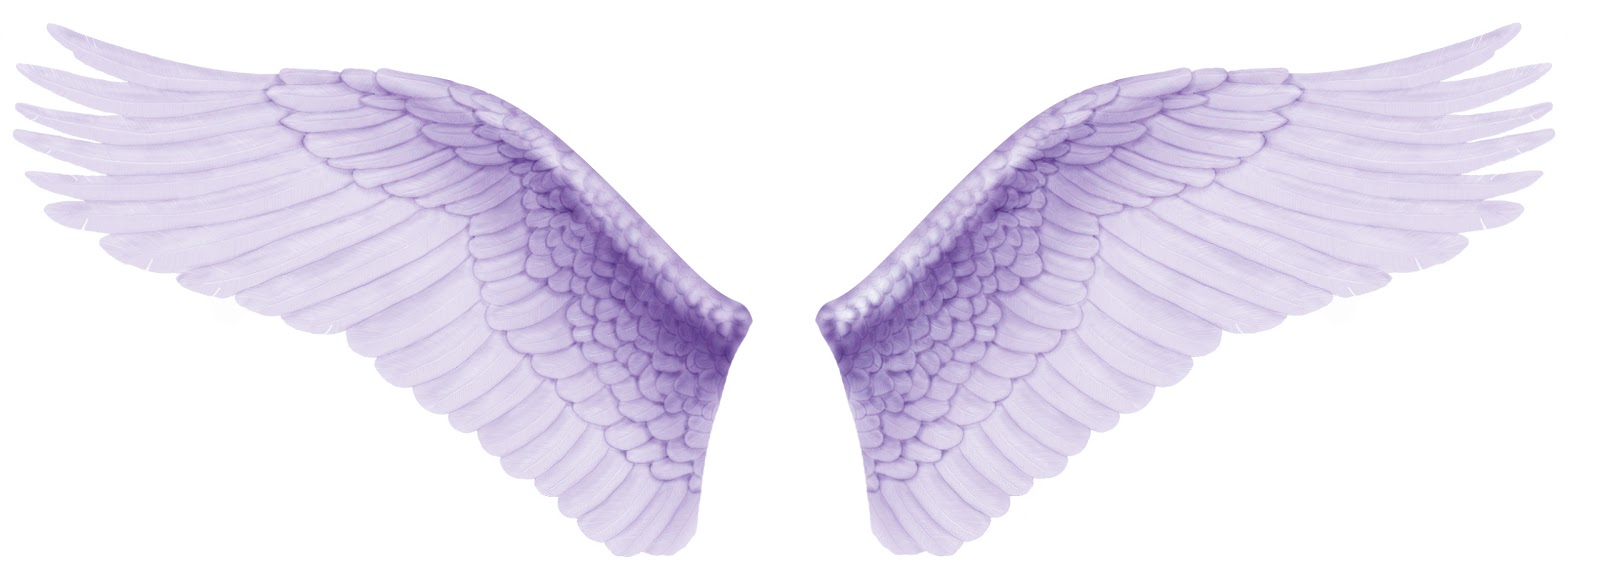 Iphone Wallpaper Icon Template Psd Files Free Download Angel Wings Angel Wing Tattoos